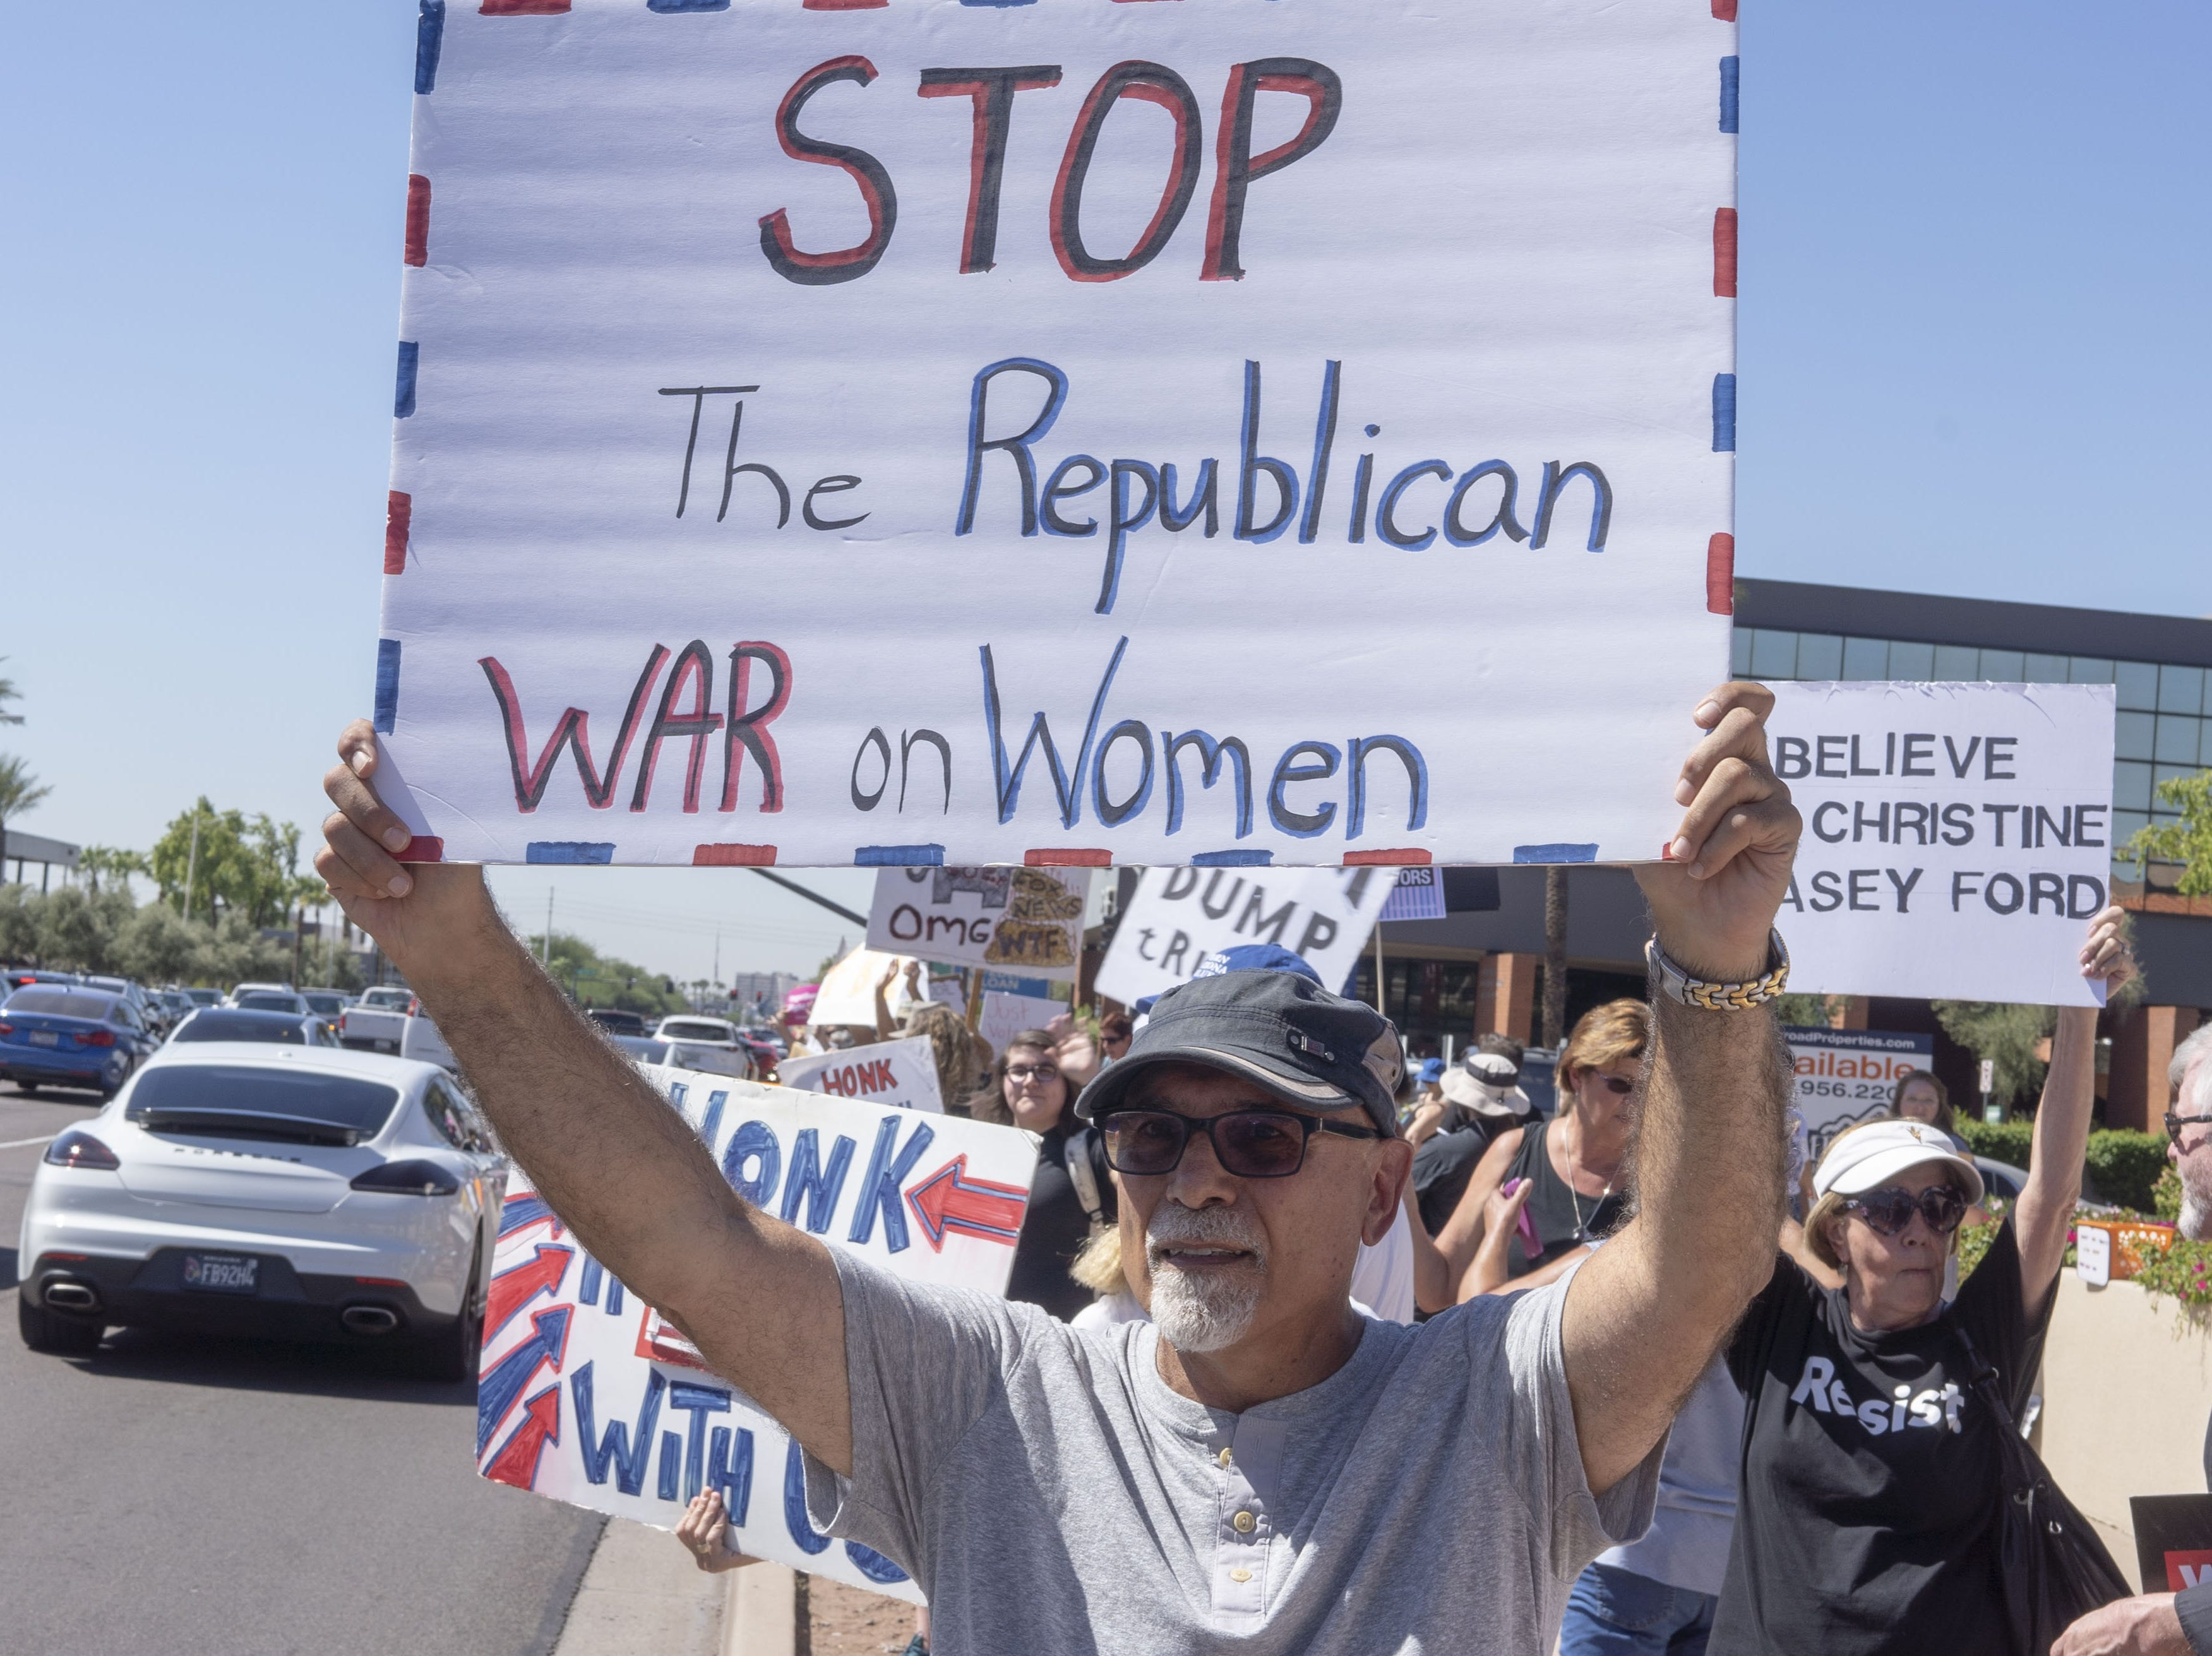 Norman Weinglass holds a sign during a protest Sept. 28, 2018, outside of Jeff Flake's office in Phoenix. Flake said he wouldn't support a U.S. Senate floor vote for Judge Brett Kavanaugh's Supreme Court confirmation without first allowing an FBI investigation into sexual harassment accusations against Kavanaugh.